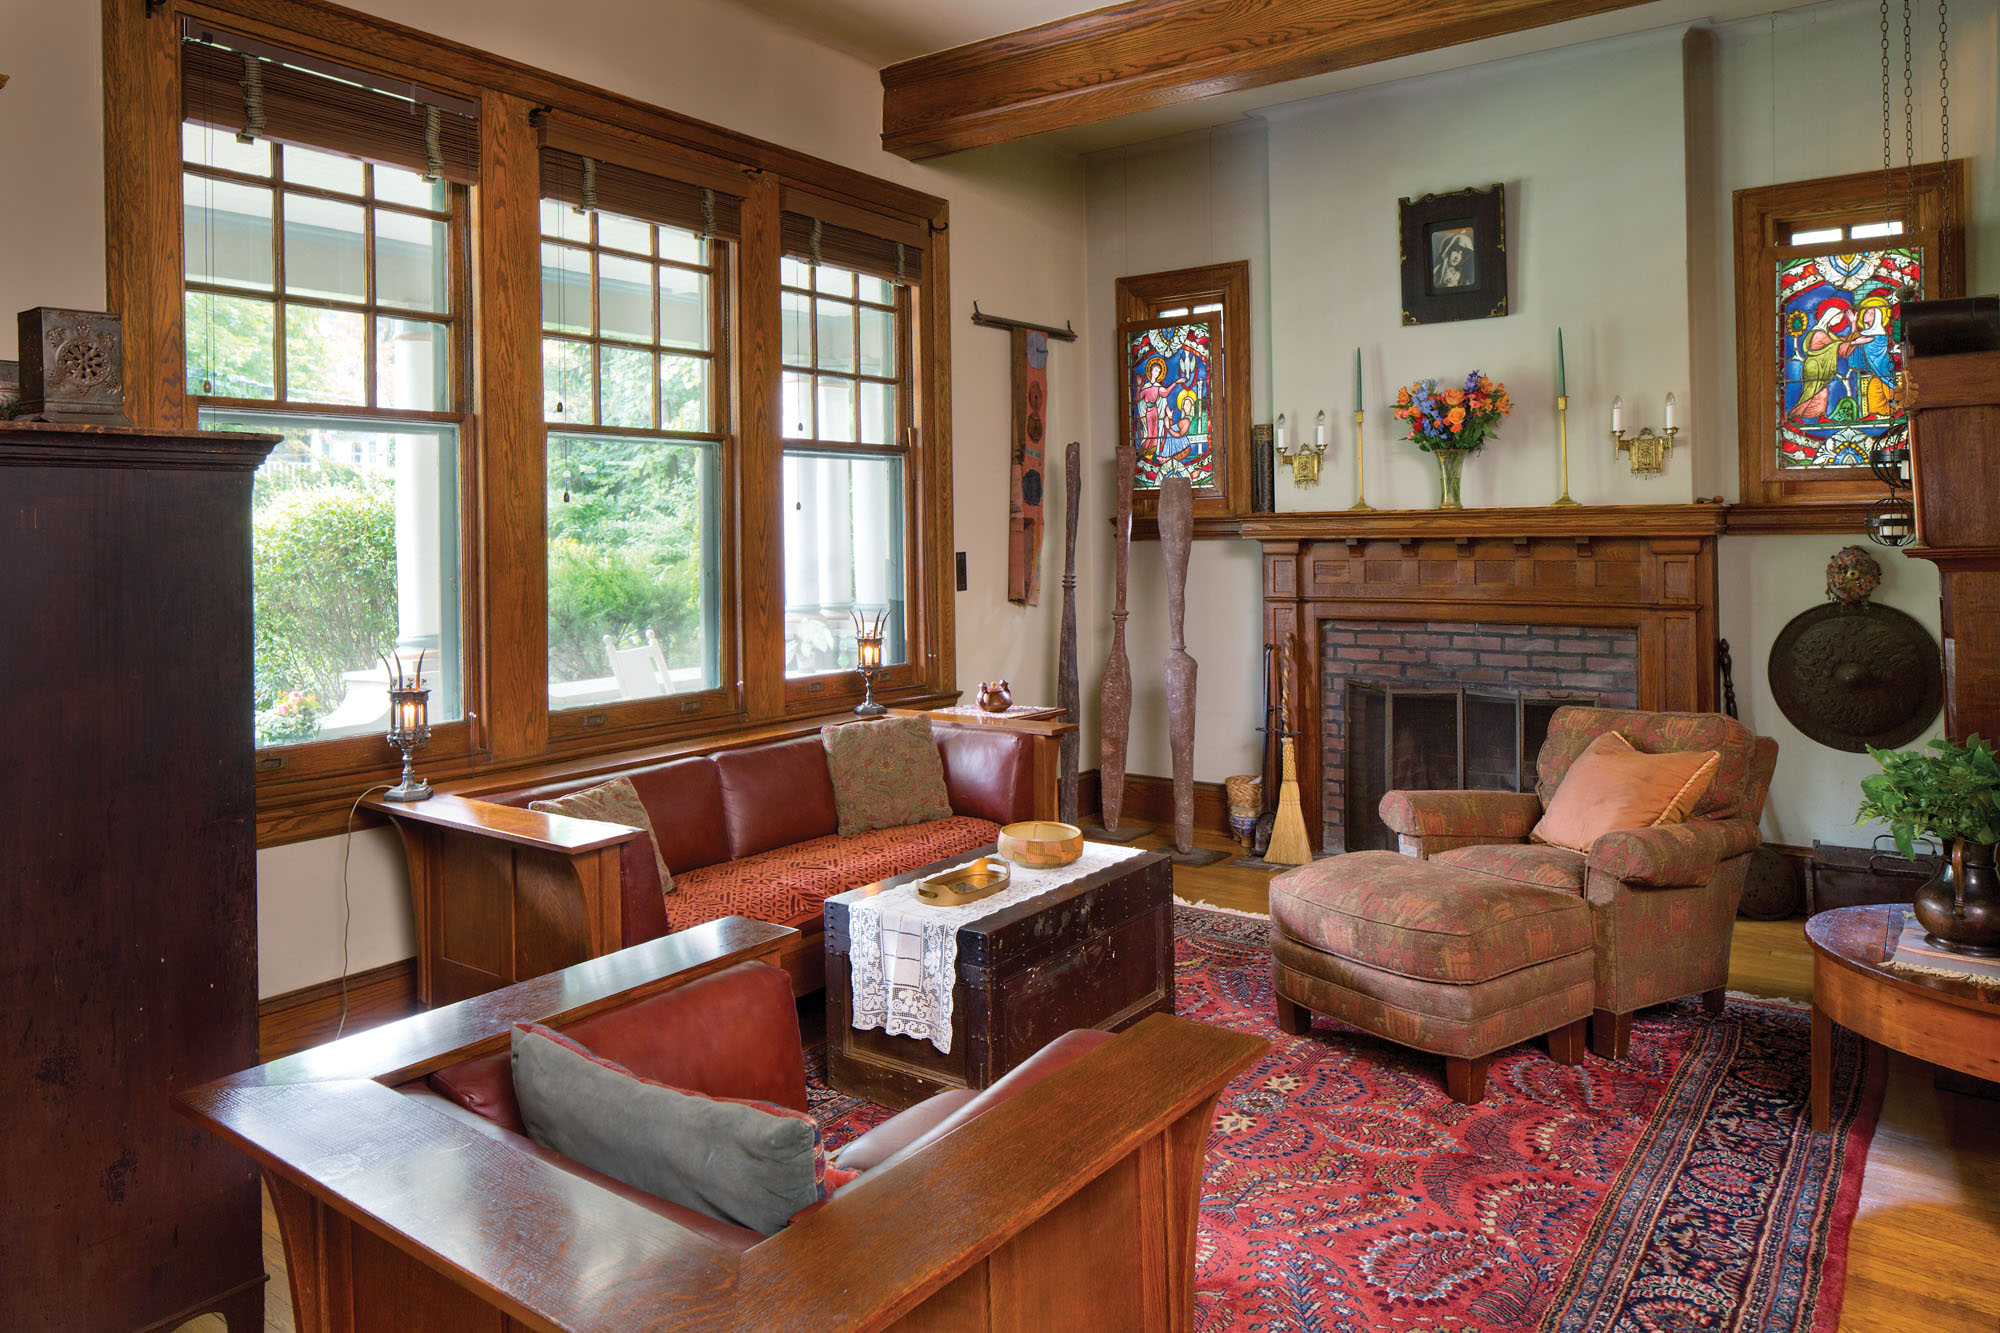 Stickley antiques, American Foursquare living room